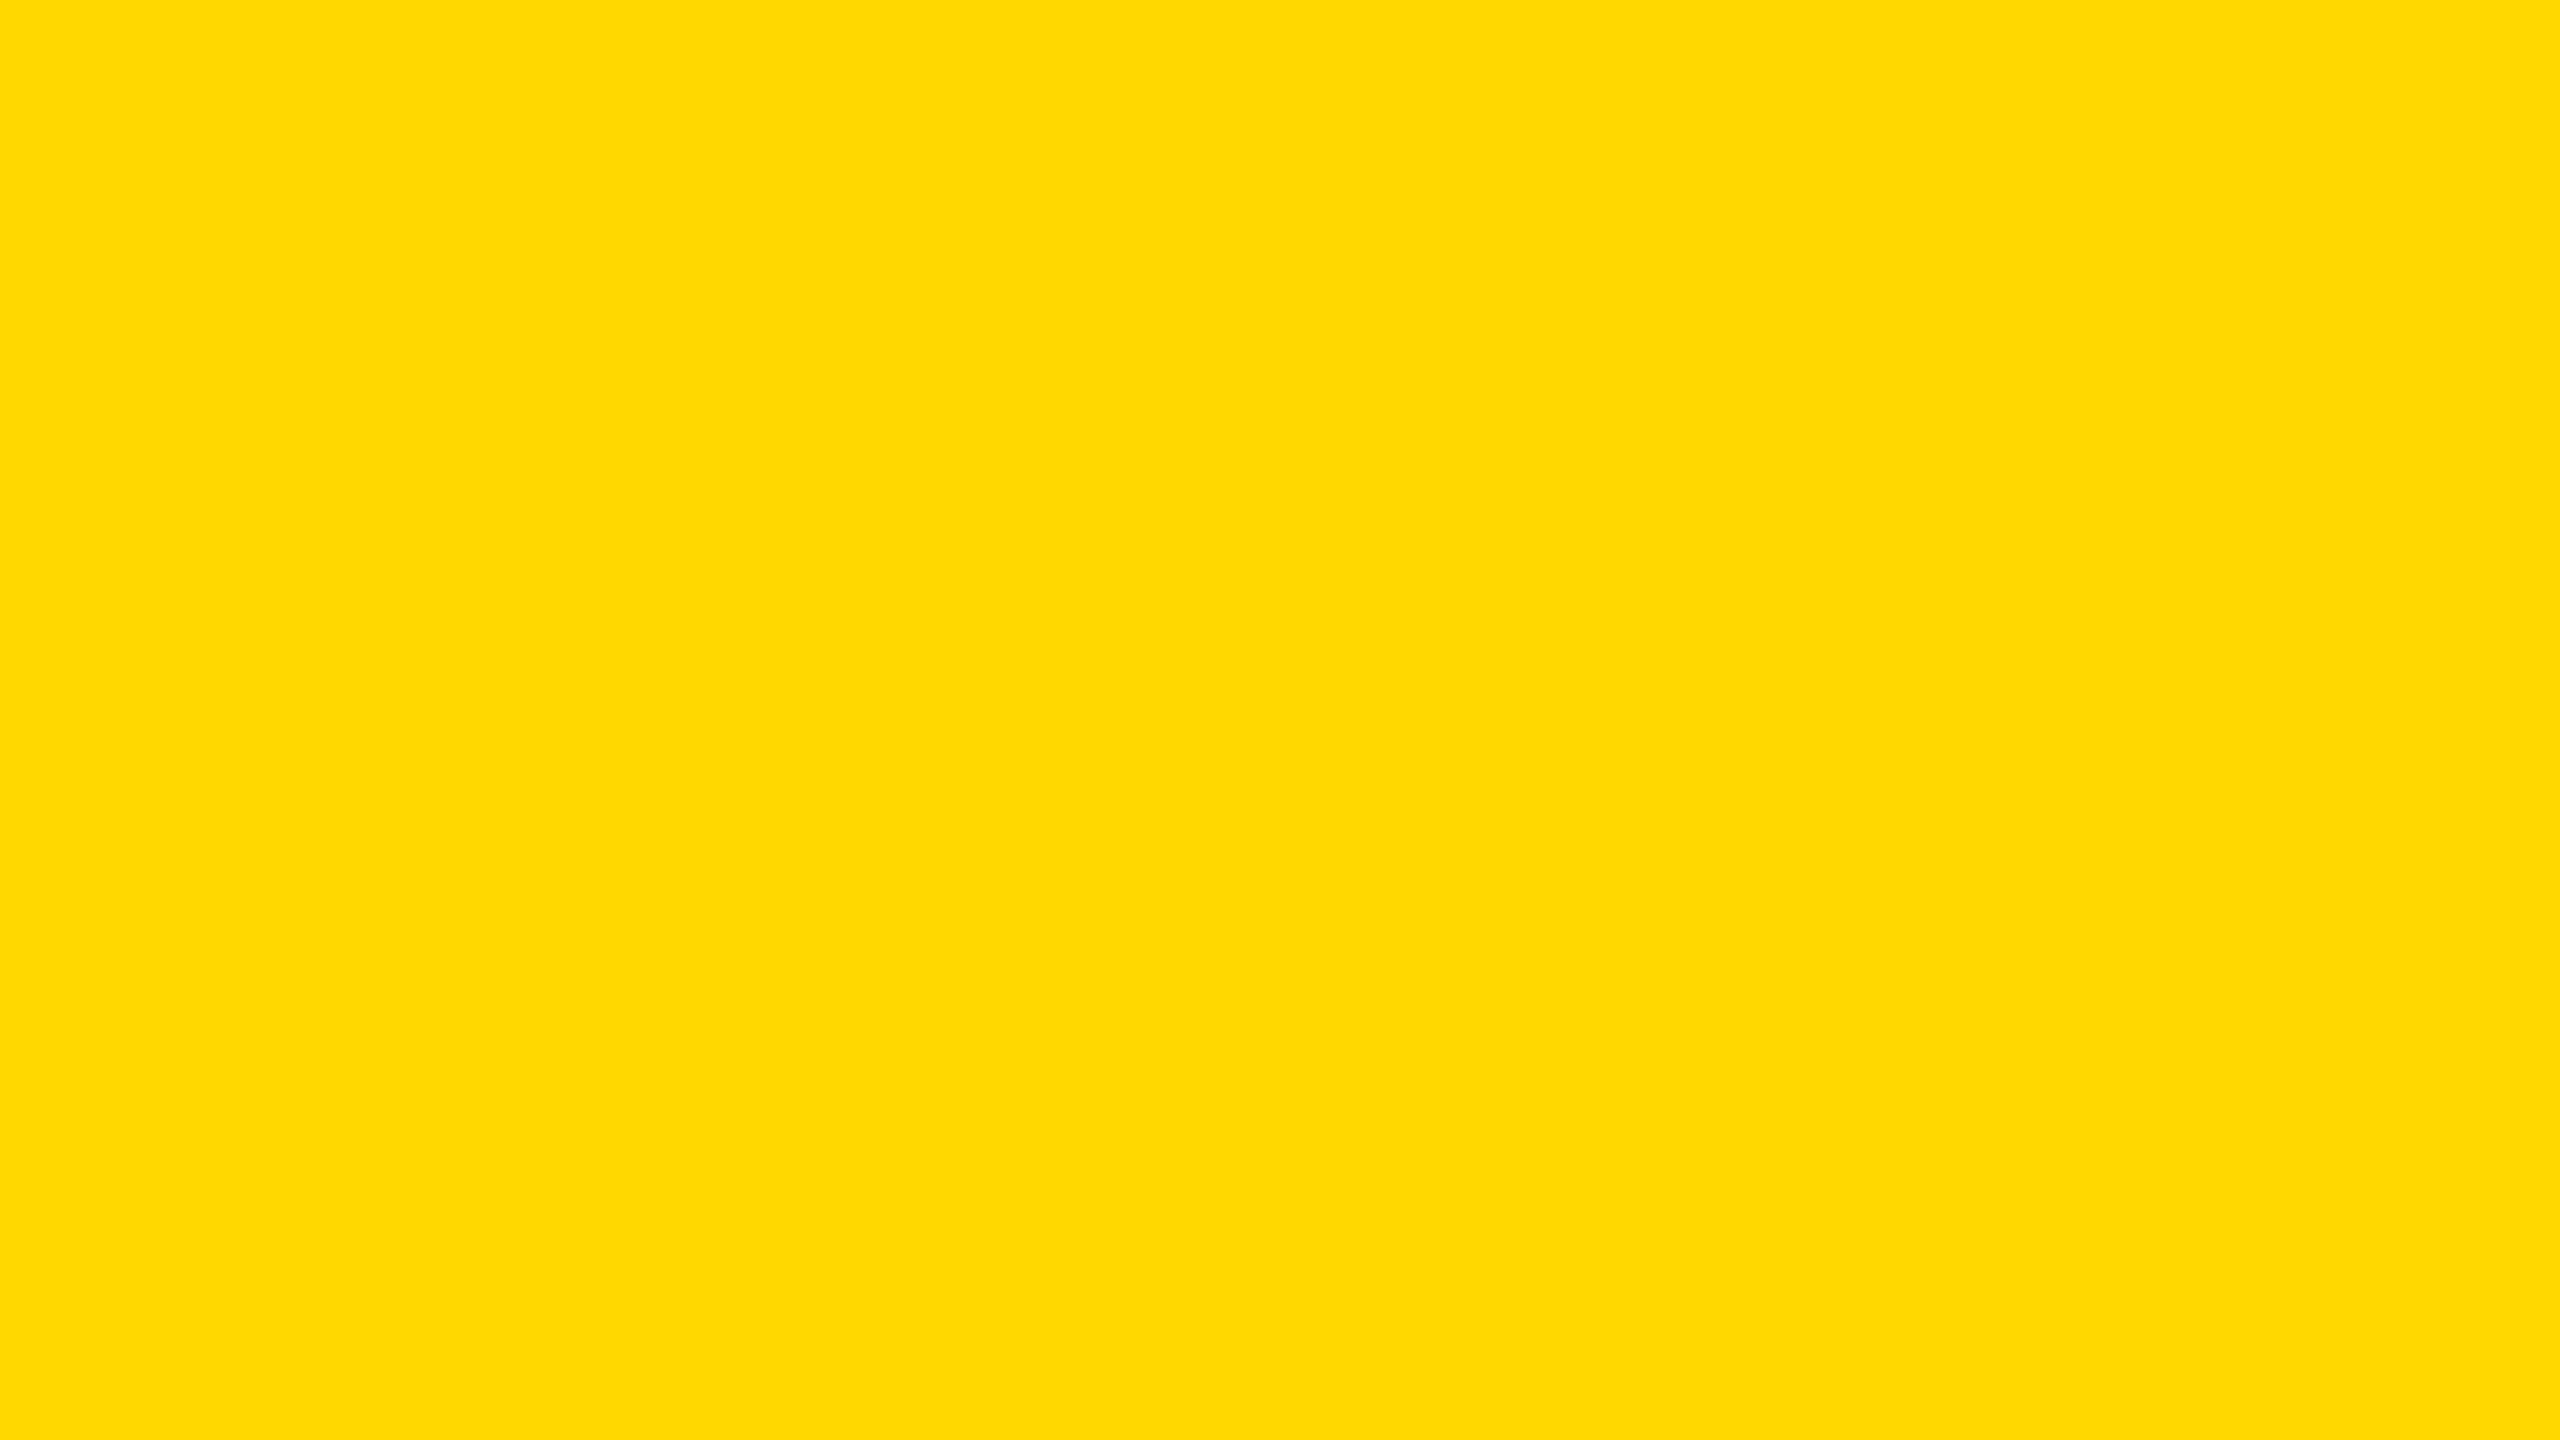 2560x1440 School Bus Yellow Solid Color Background